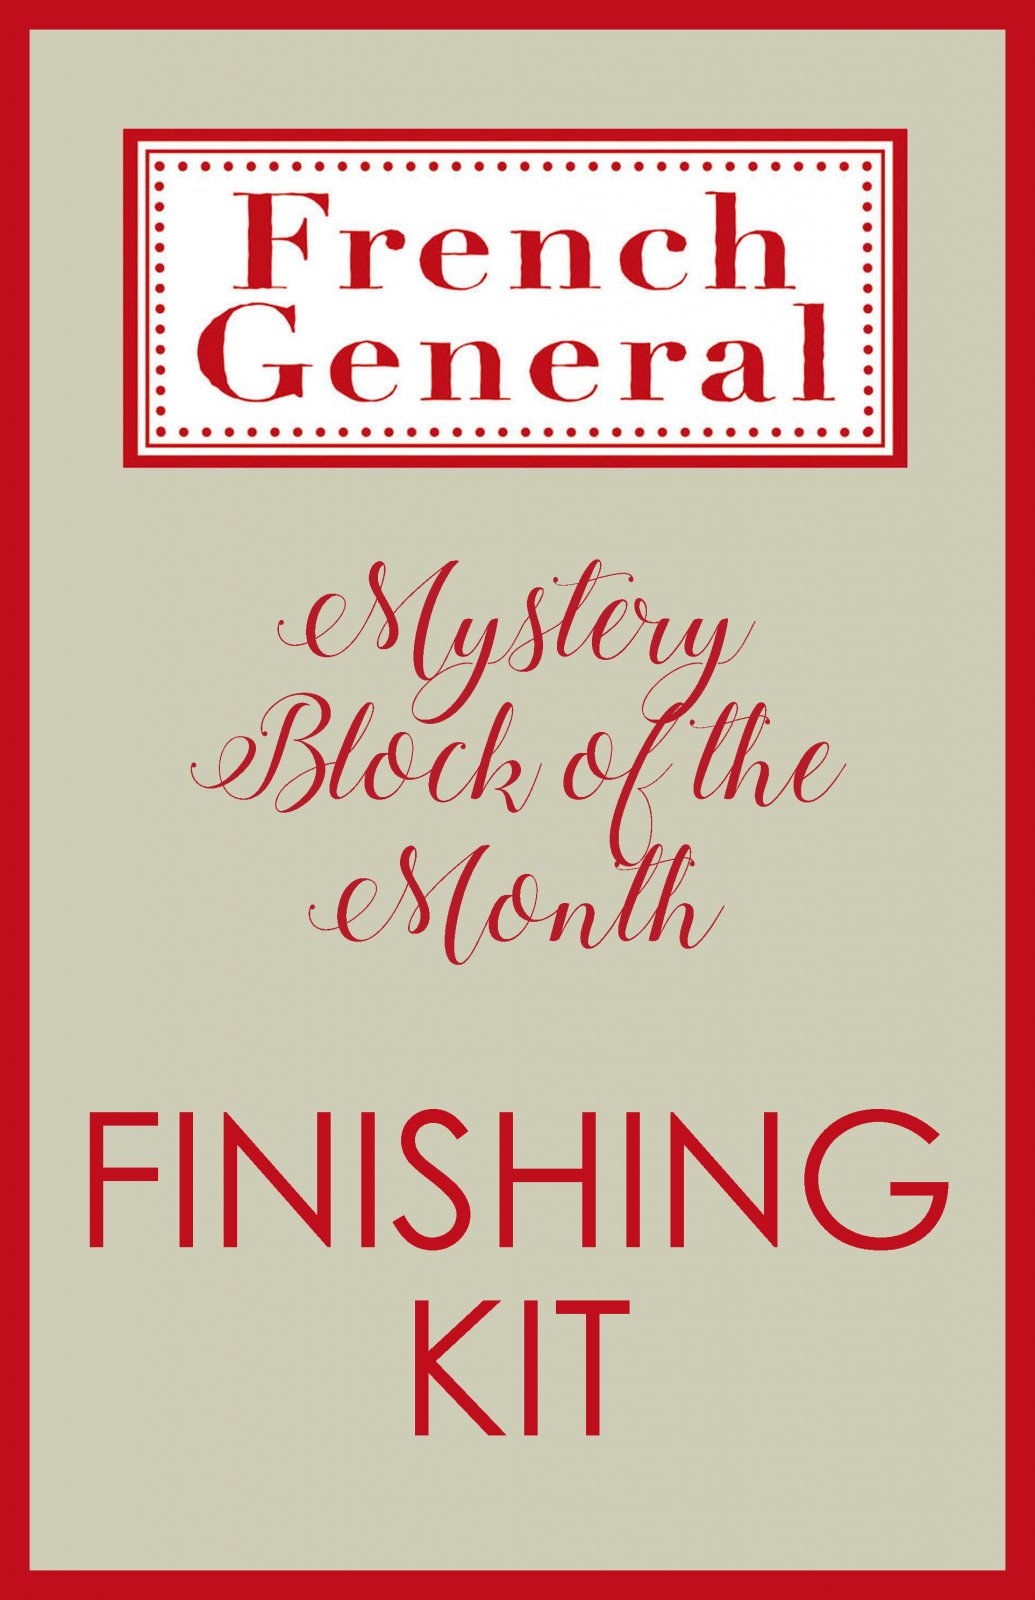 French General Mystery BOM Month Finishing Kit Digital Download